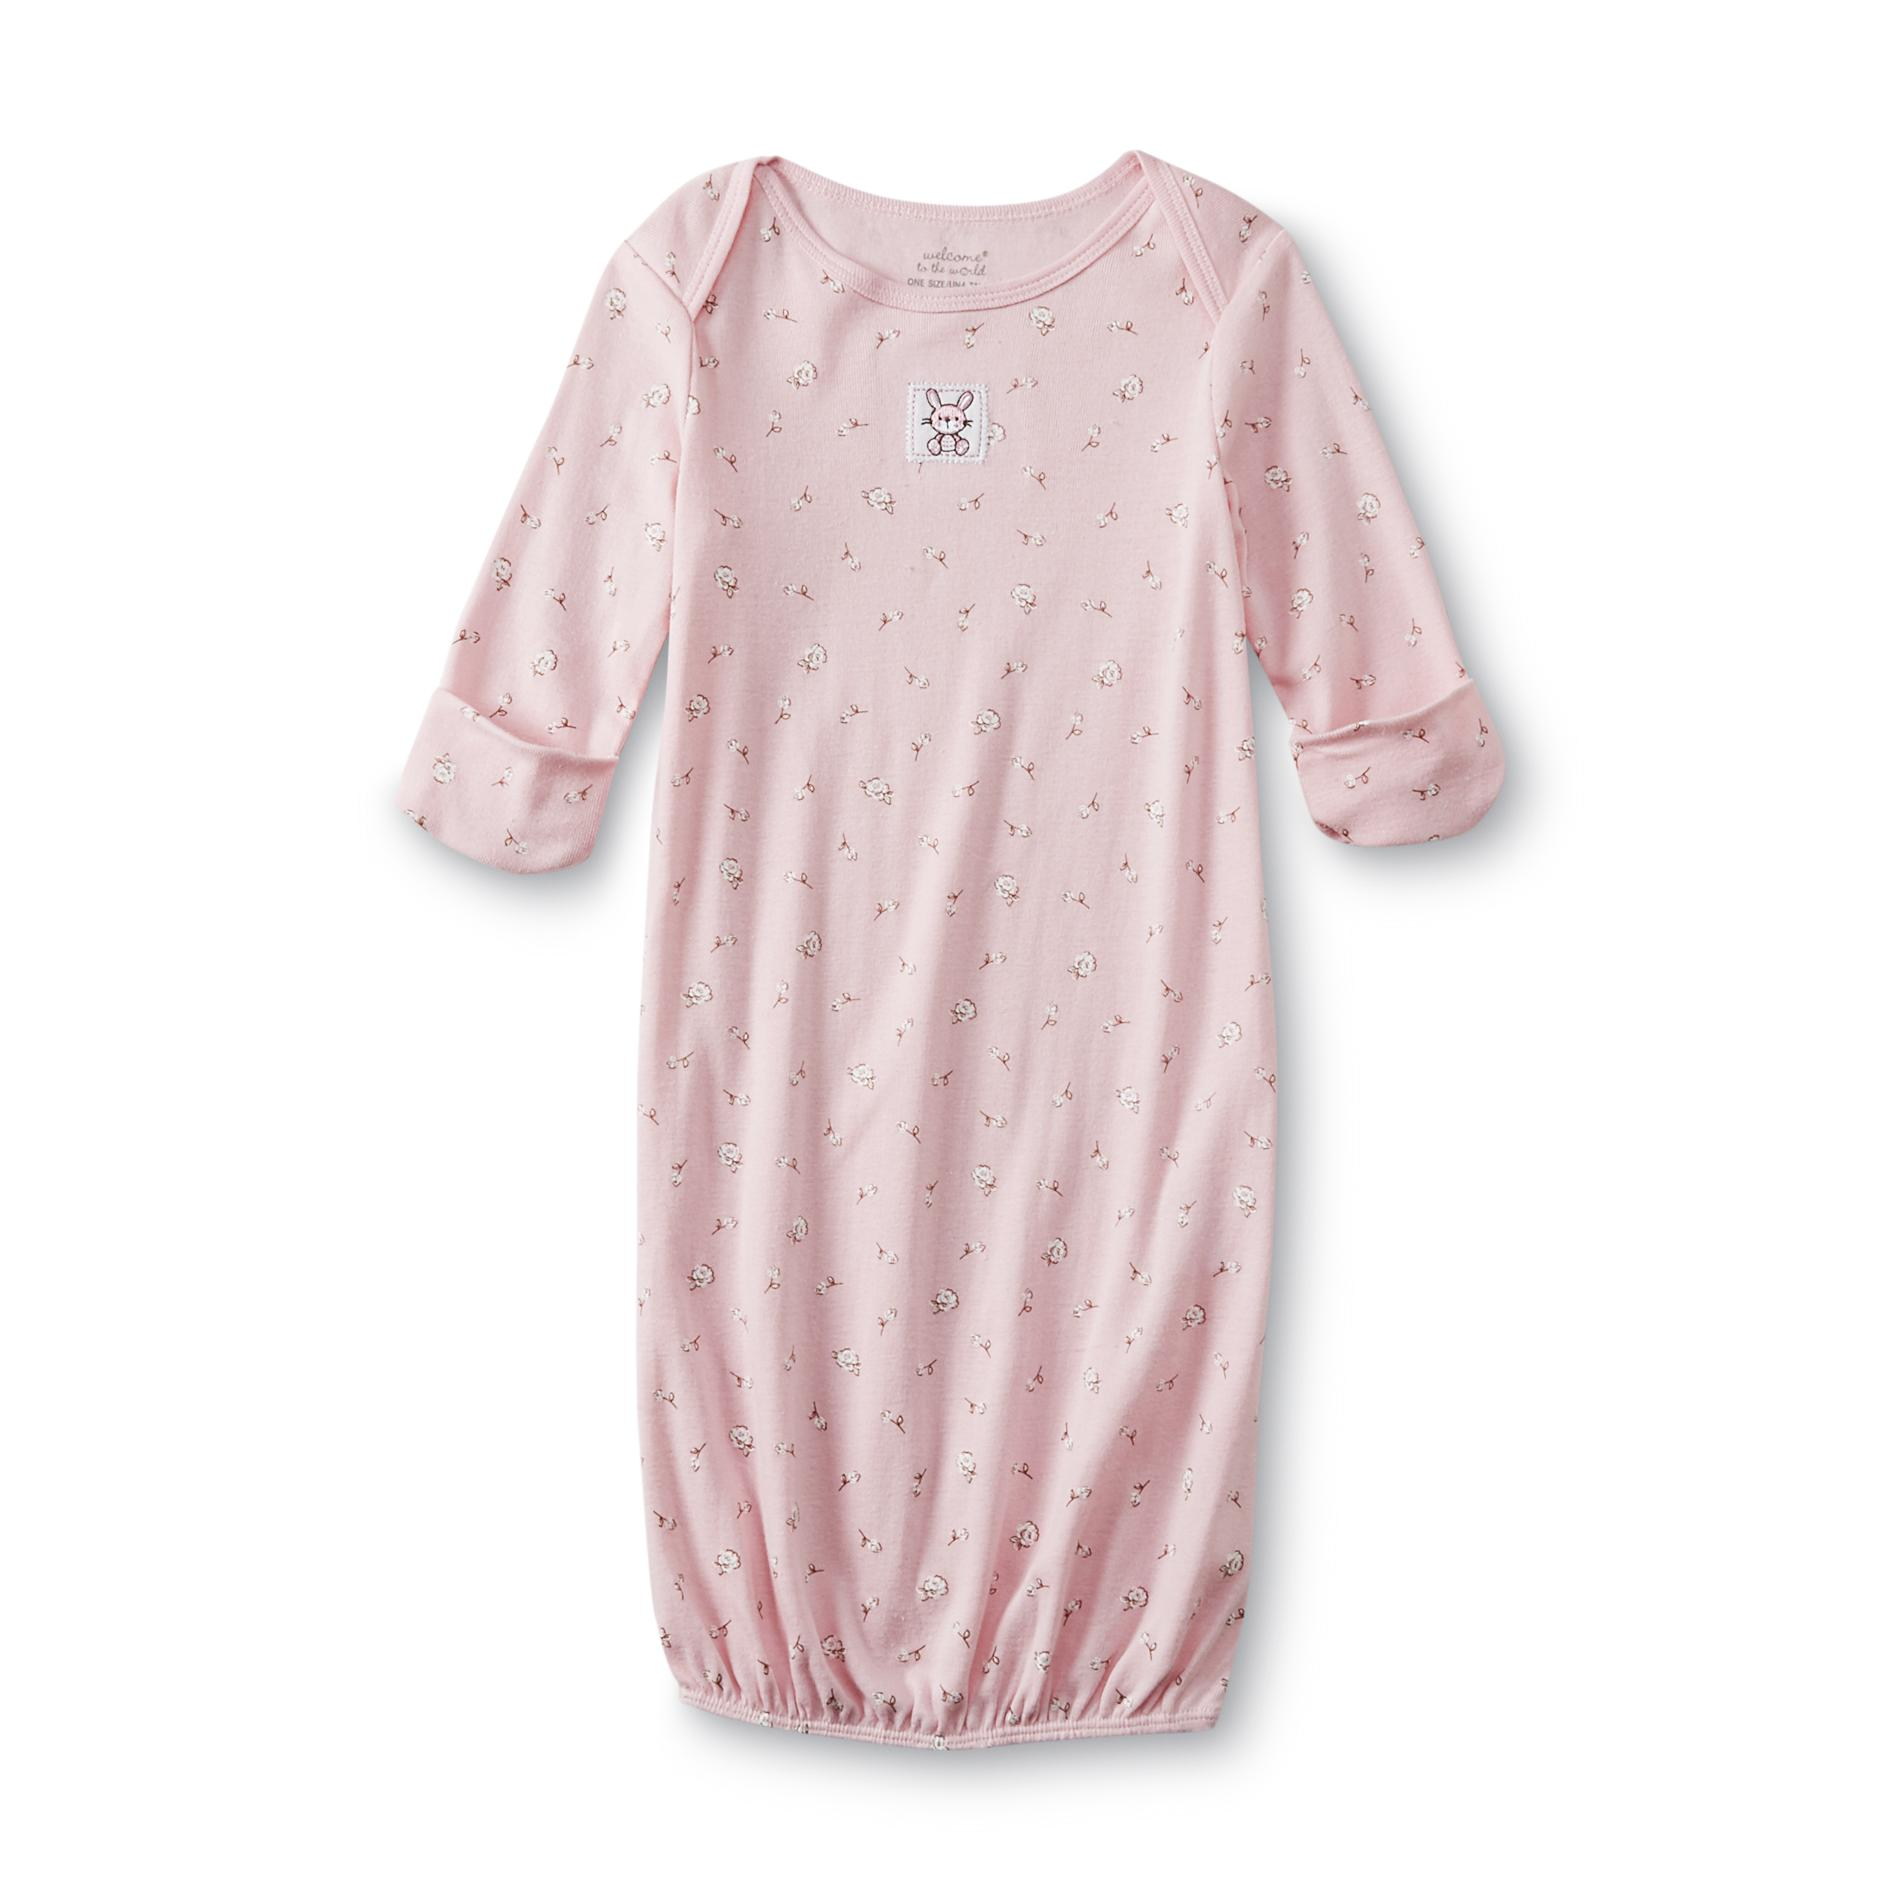 Welcome to the World Infant Girl\'s Knit Sleep Gown - Bunny